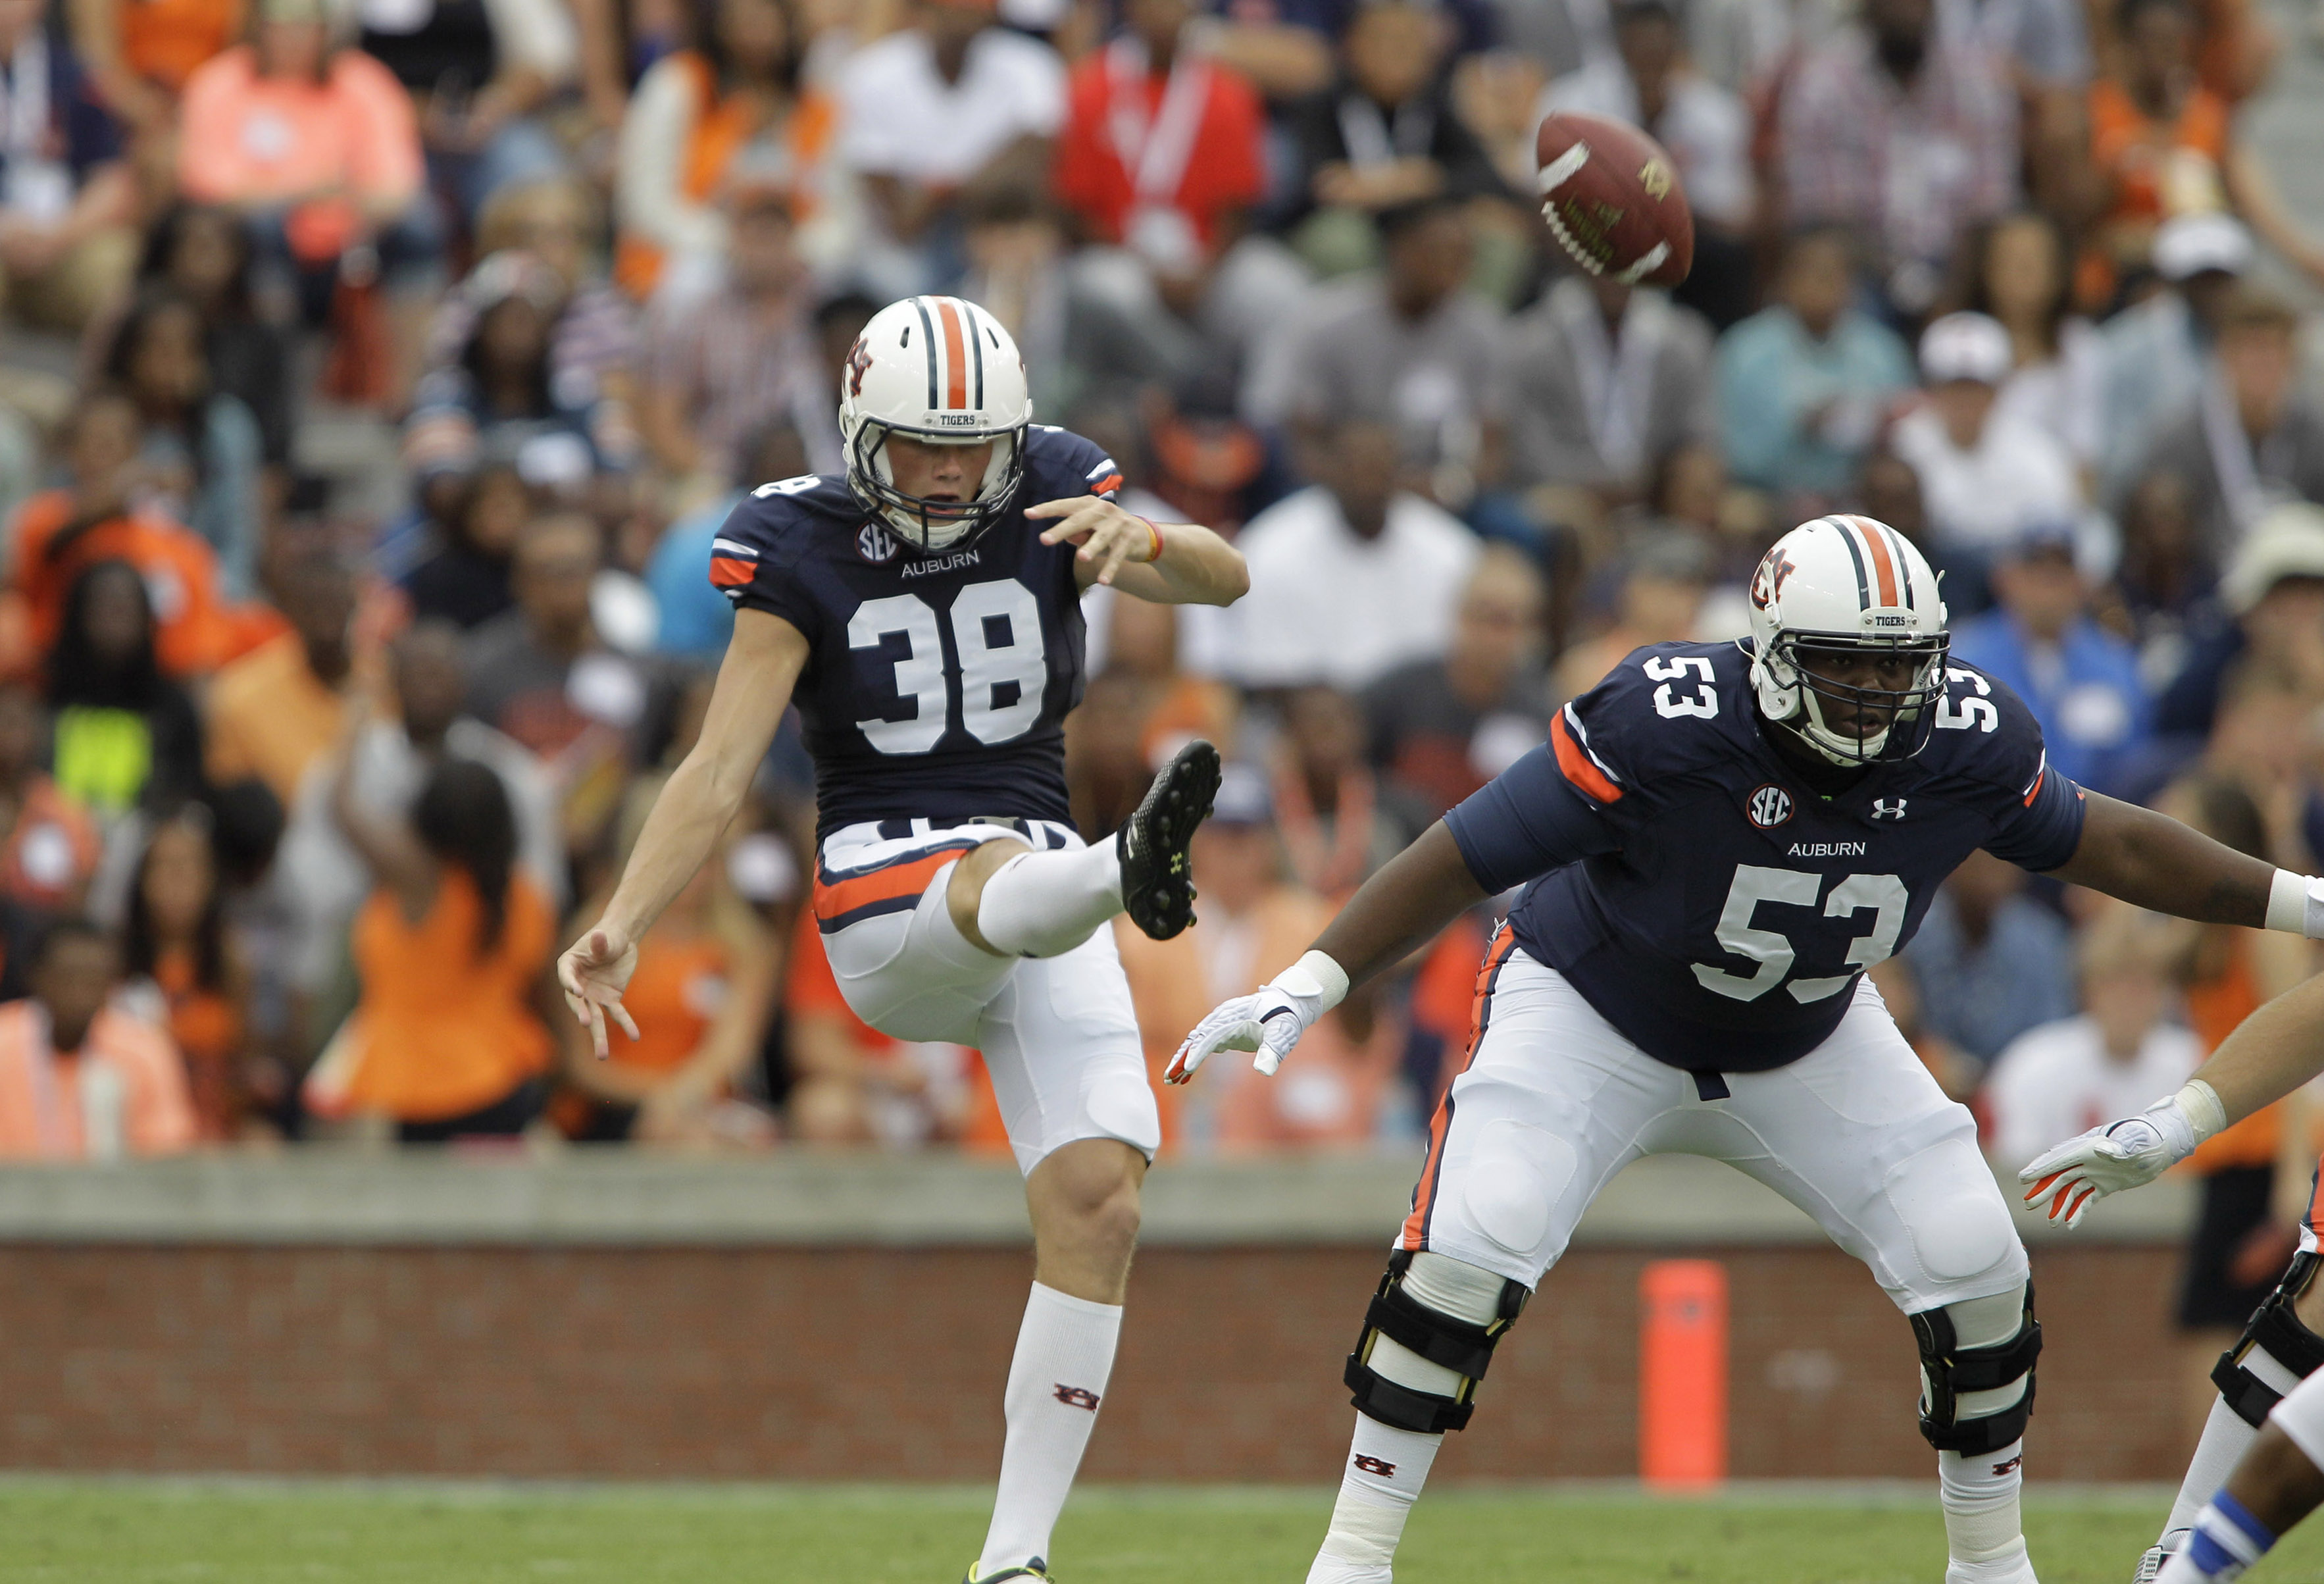 Hopefully this is something we don't see Carlson doing next season. Or anyone else on Auburn's team, either!